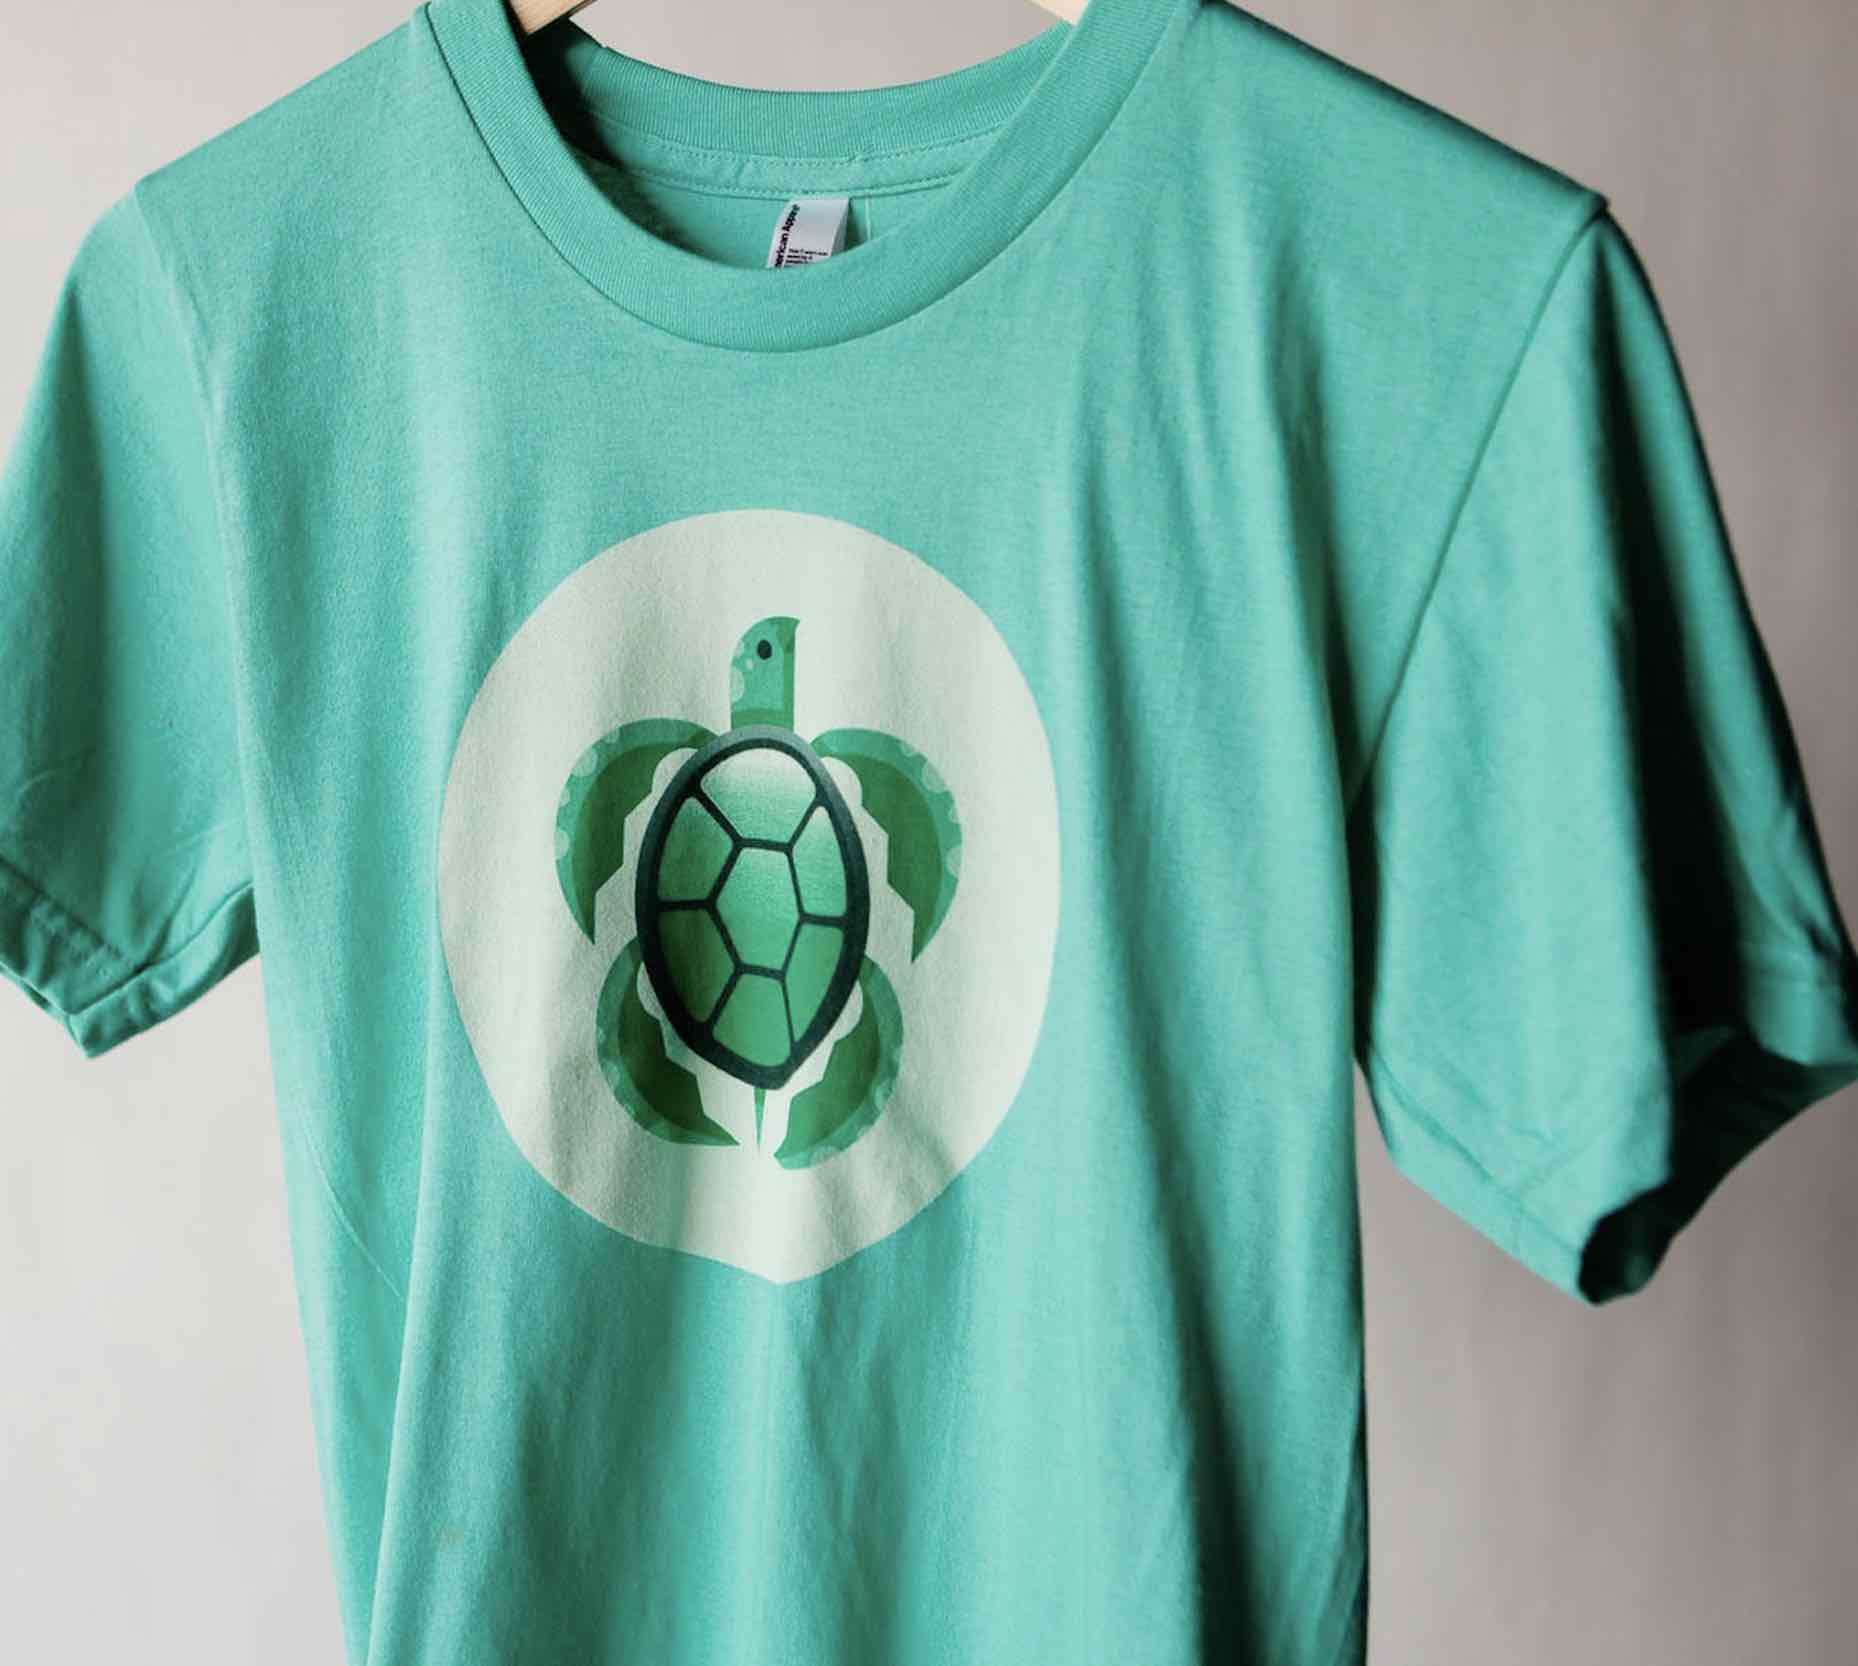 An eco-friendly green shirt with a cute little turtle on the front, printed with water based inks